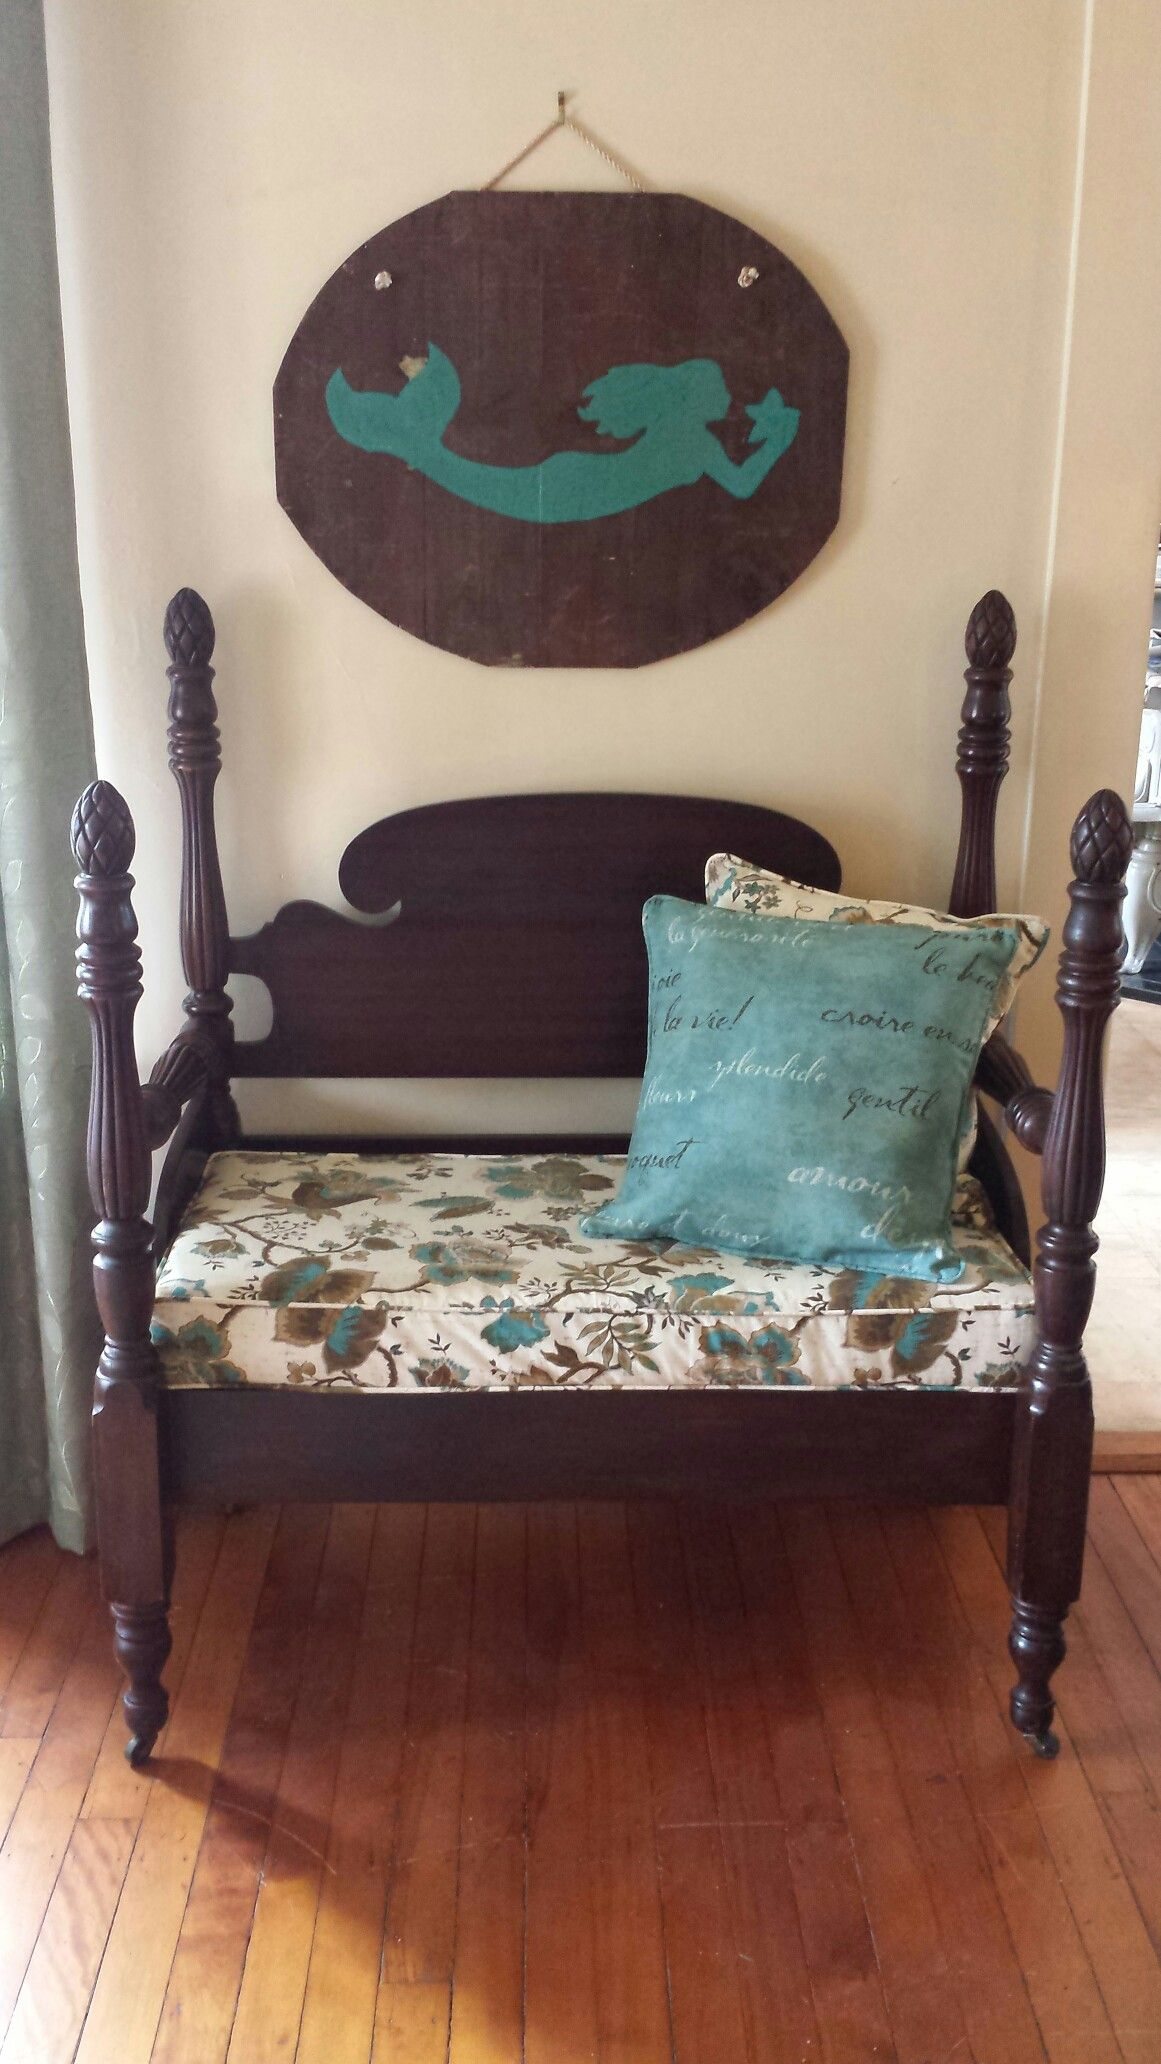 Pineapple Bed turned Bench & Mermaid Wall Hanging Bed